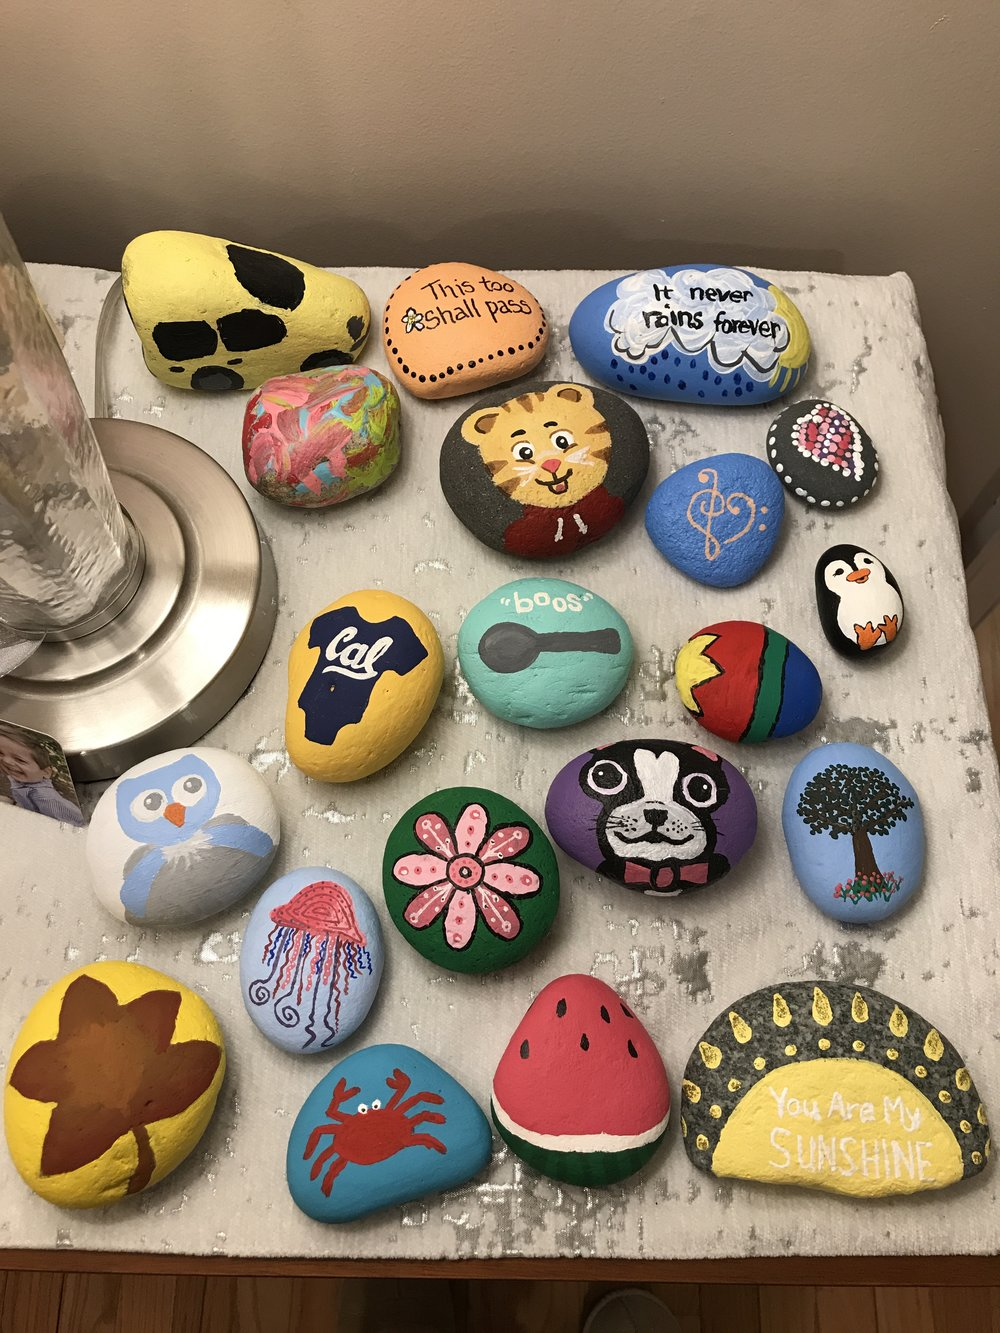 Here's our full rock collection, as of February 19, 2018.